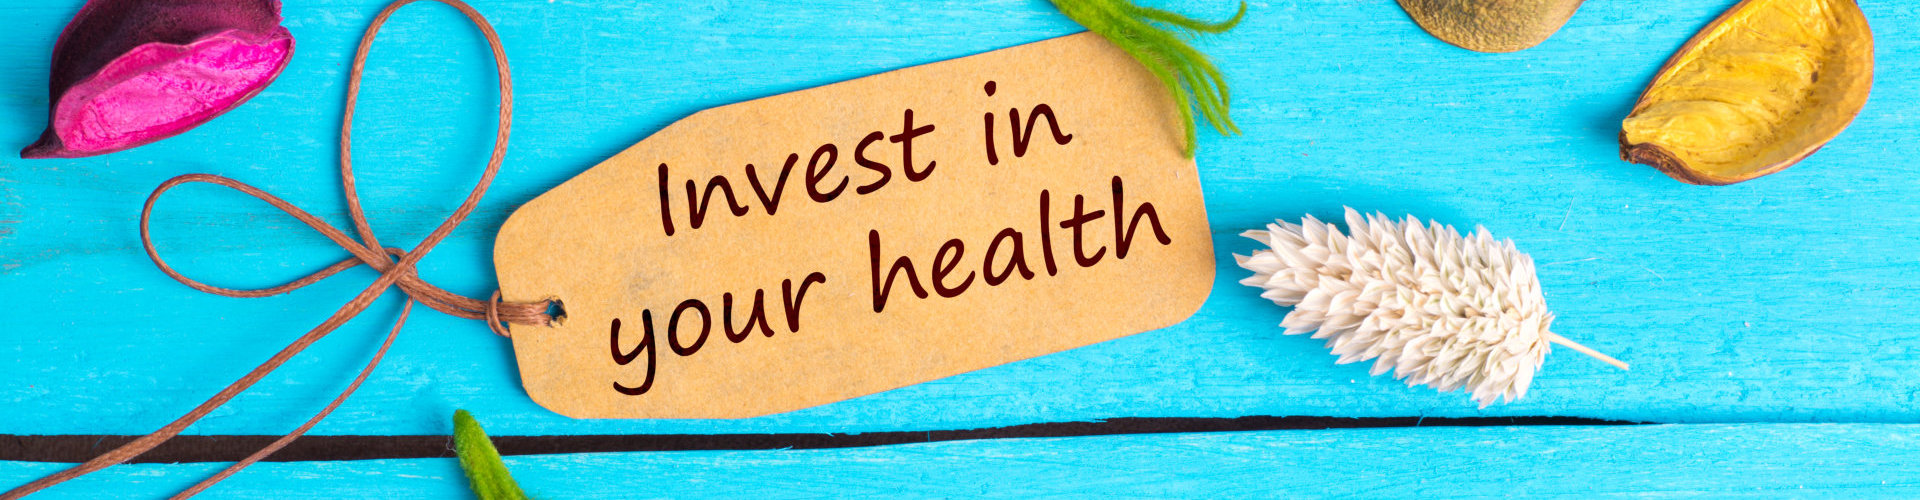 invest on your health